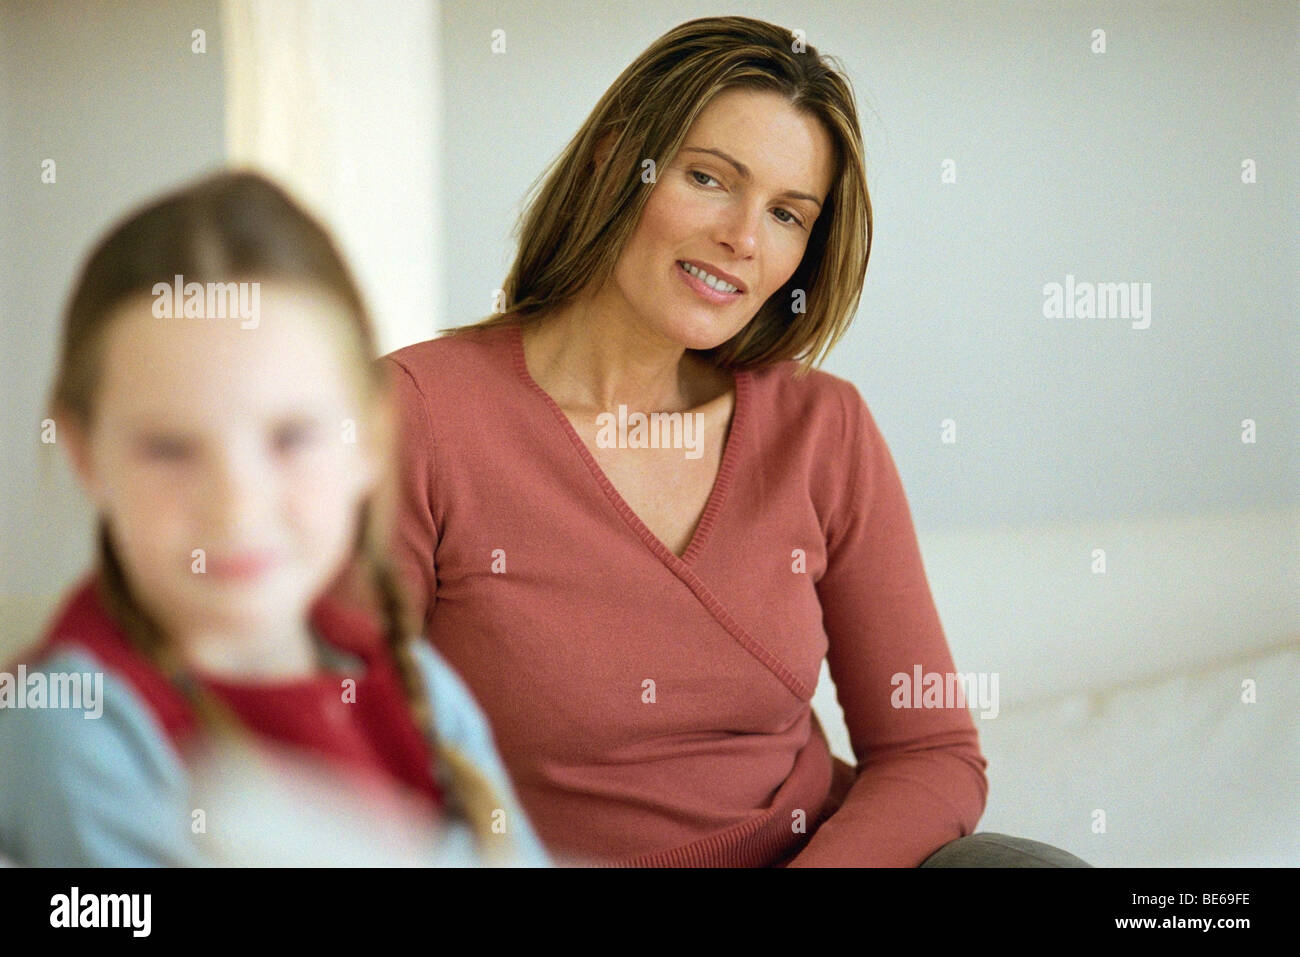 Mother looking at daughter with pride - Stock Image